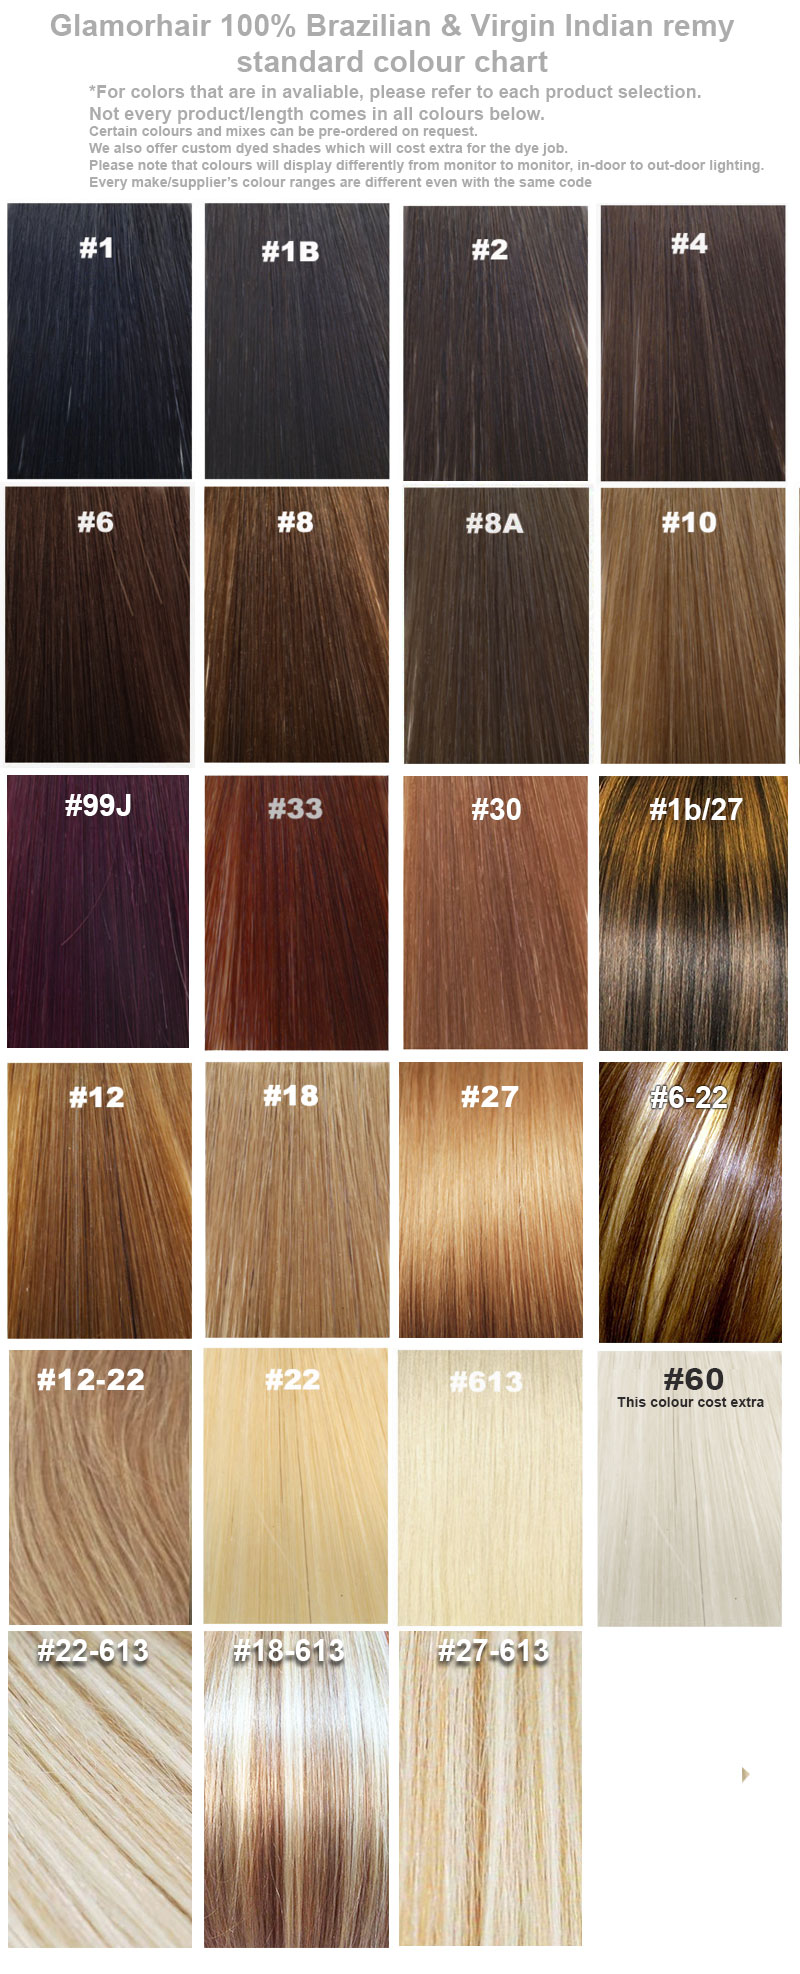 Glamorhair color chart geenschuldenfo Choice Image